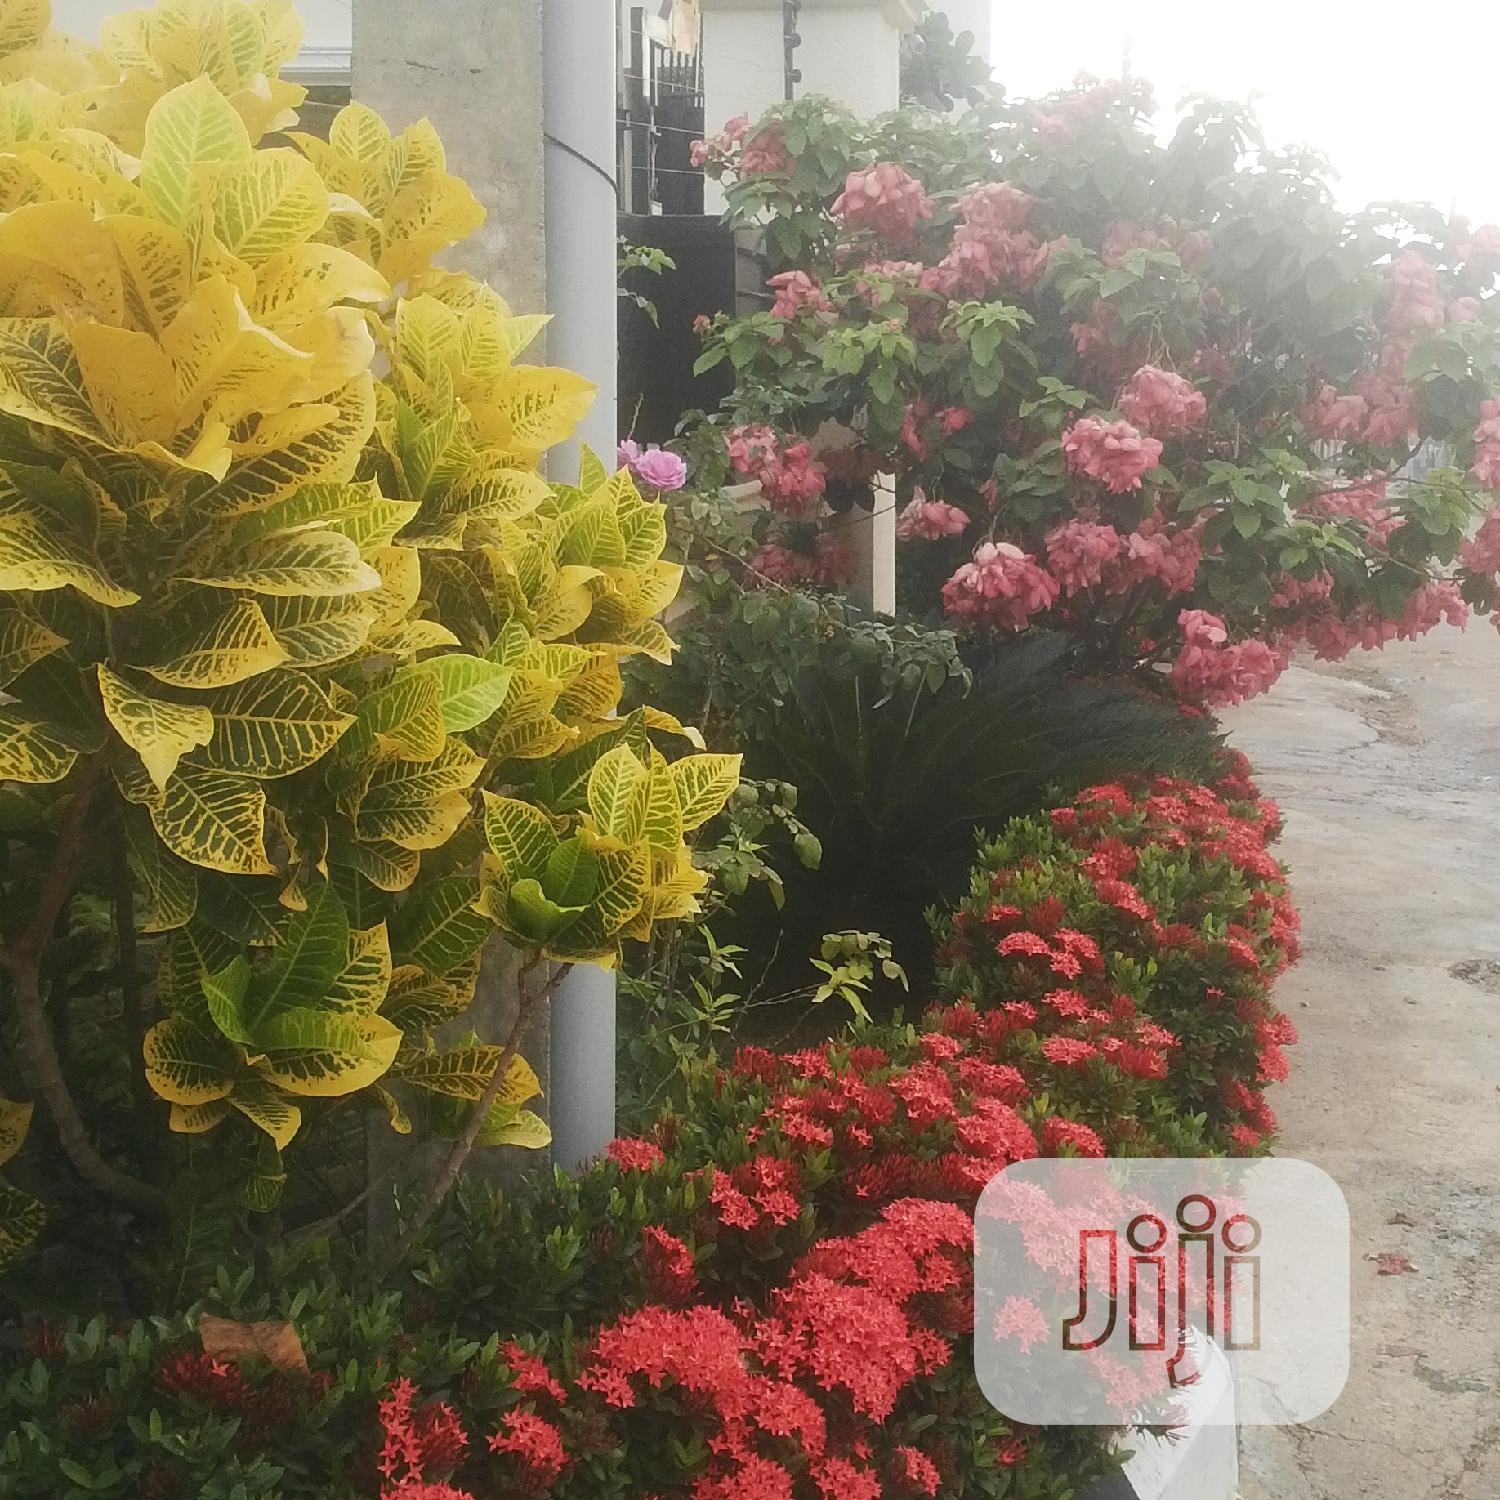 Flower Pots For Indoors And Outdoors Plants | Garden for sale in Wuse, Abuja (FCT) State, Nigeria